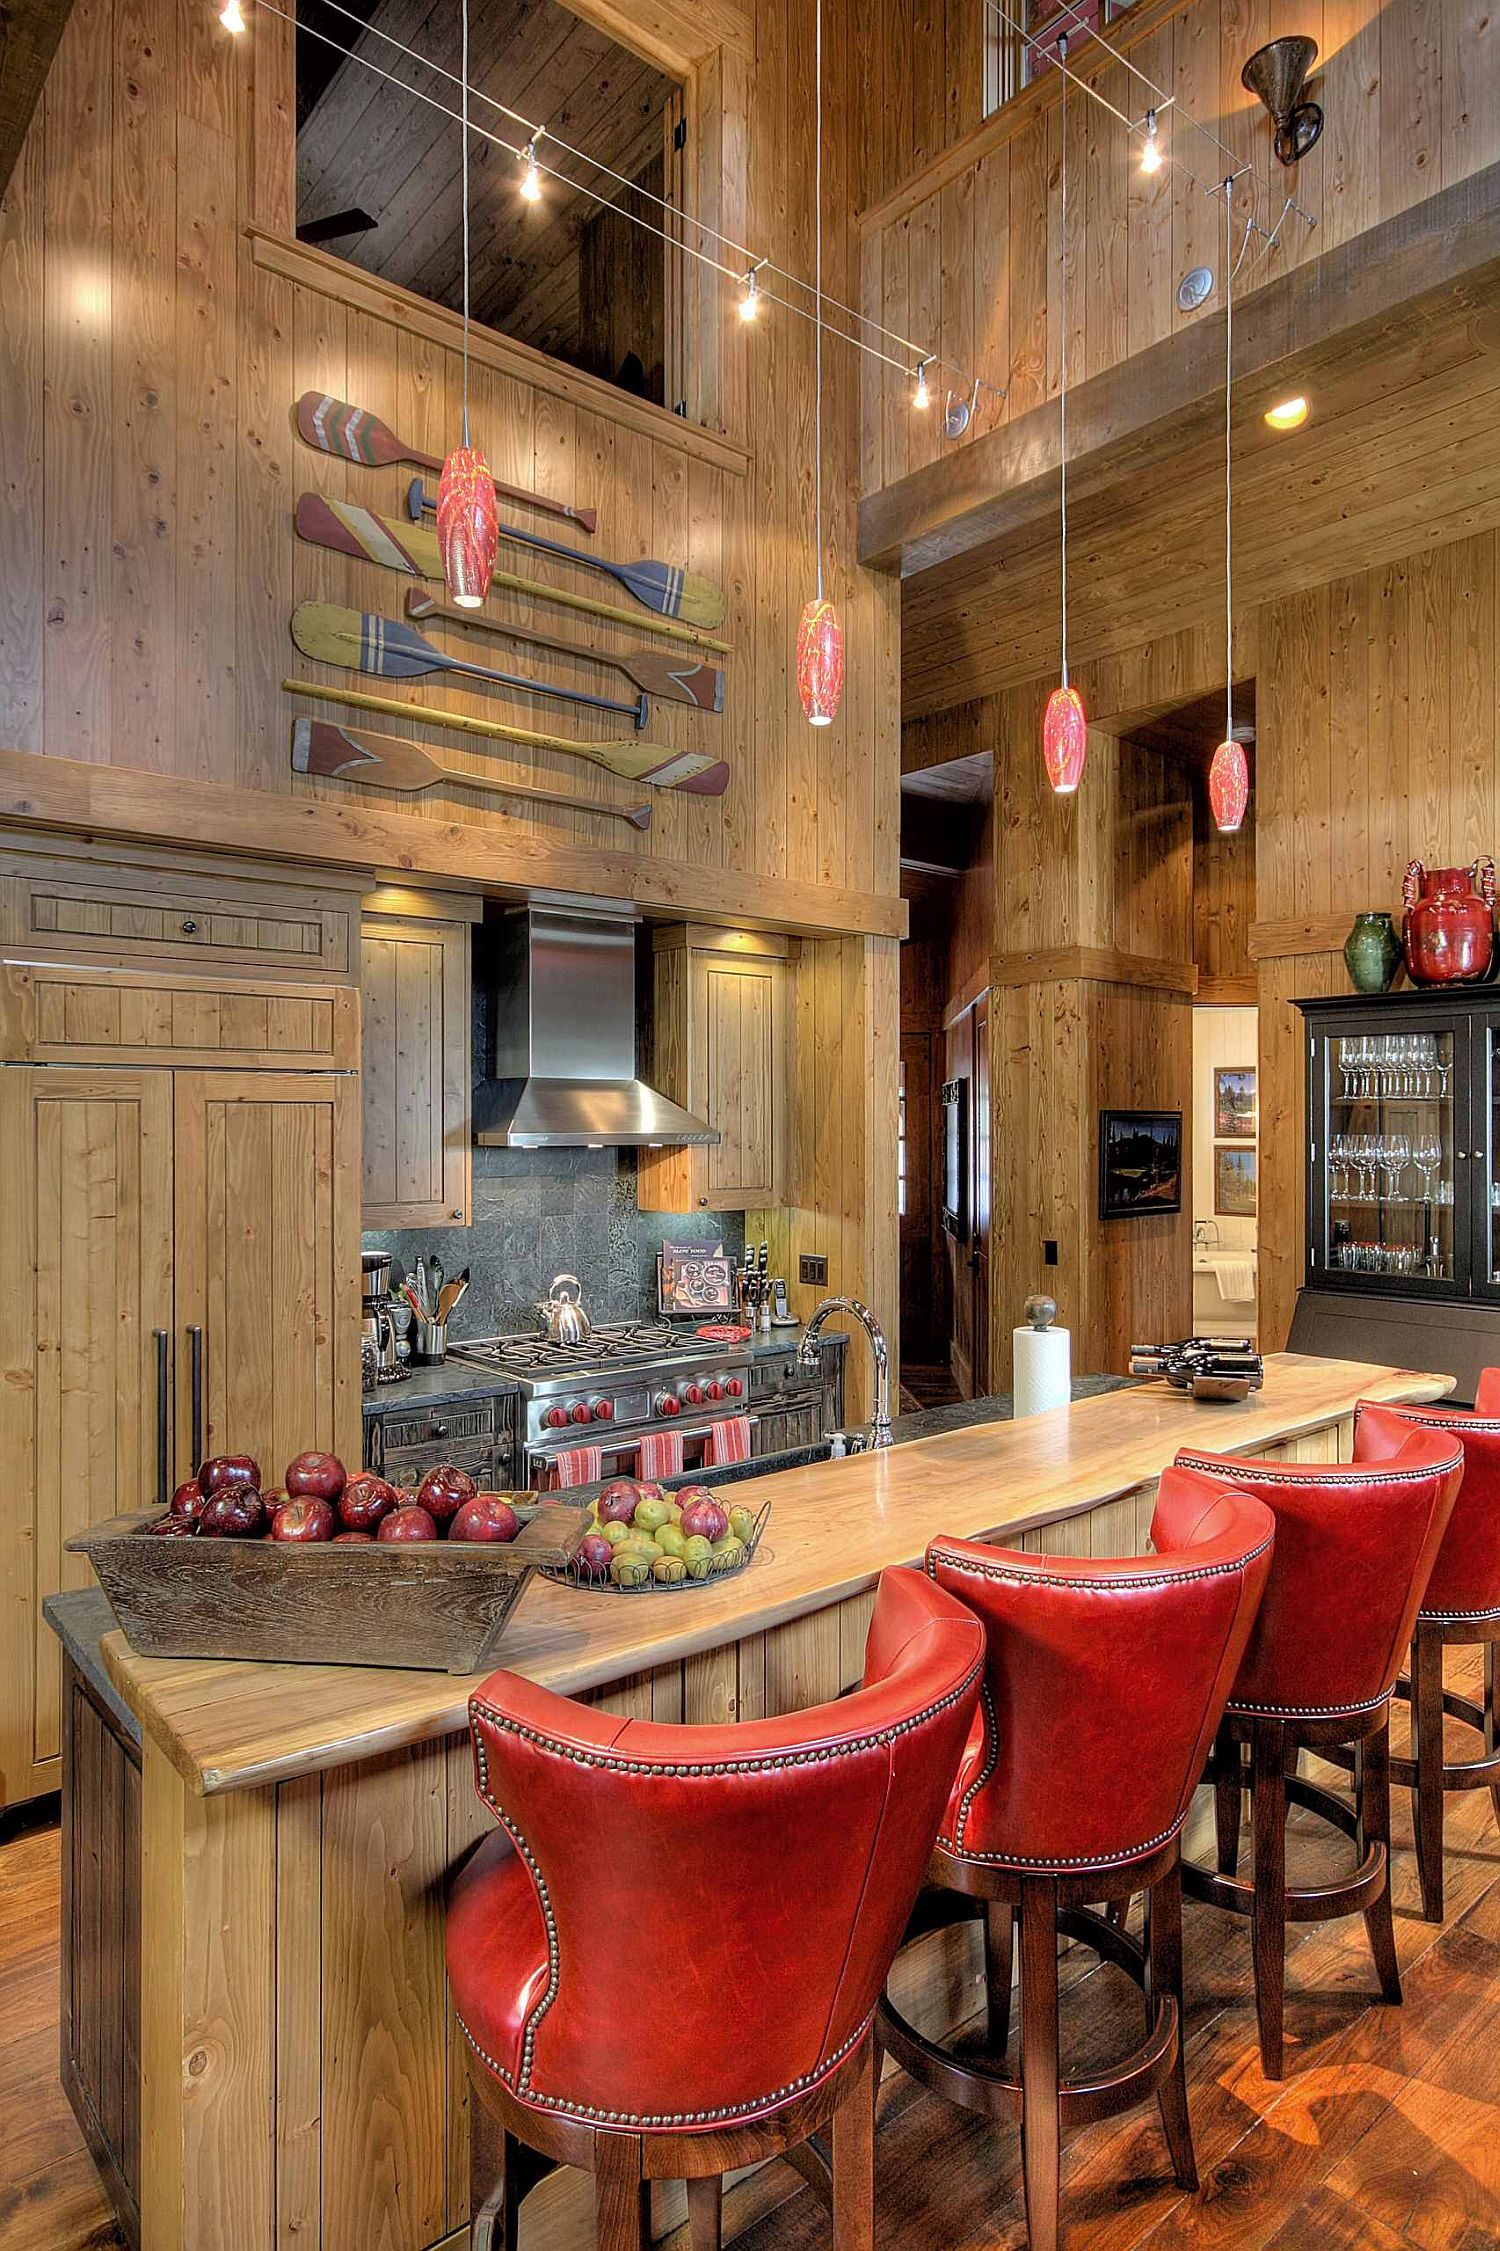 Delightful blend of wood and red in the spacious rustic kitchen